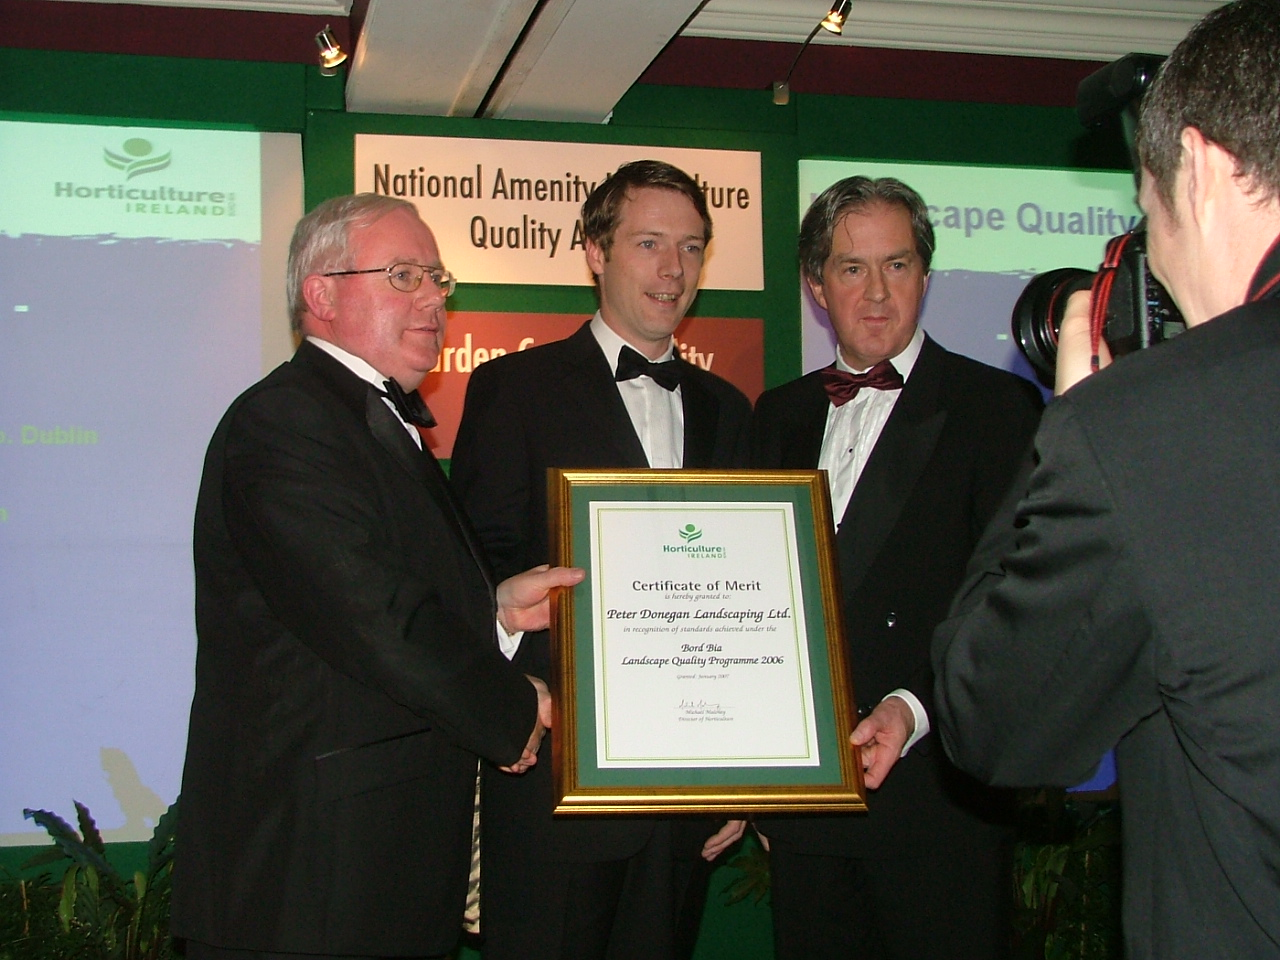 Noel Smith, Peter Donegan & Aidan Cotter